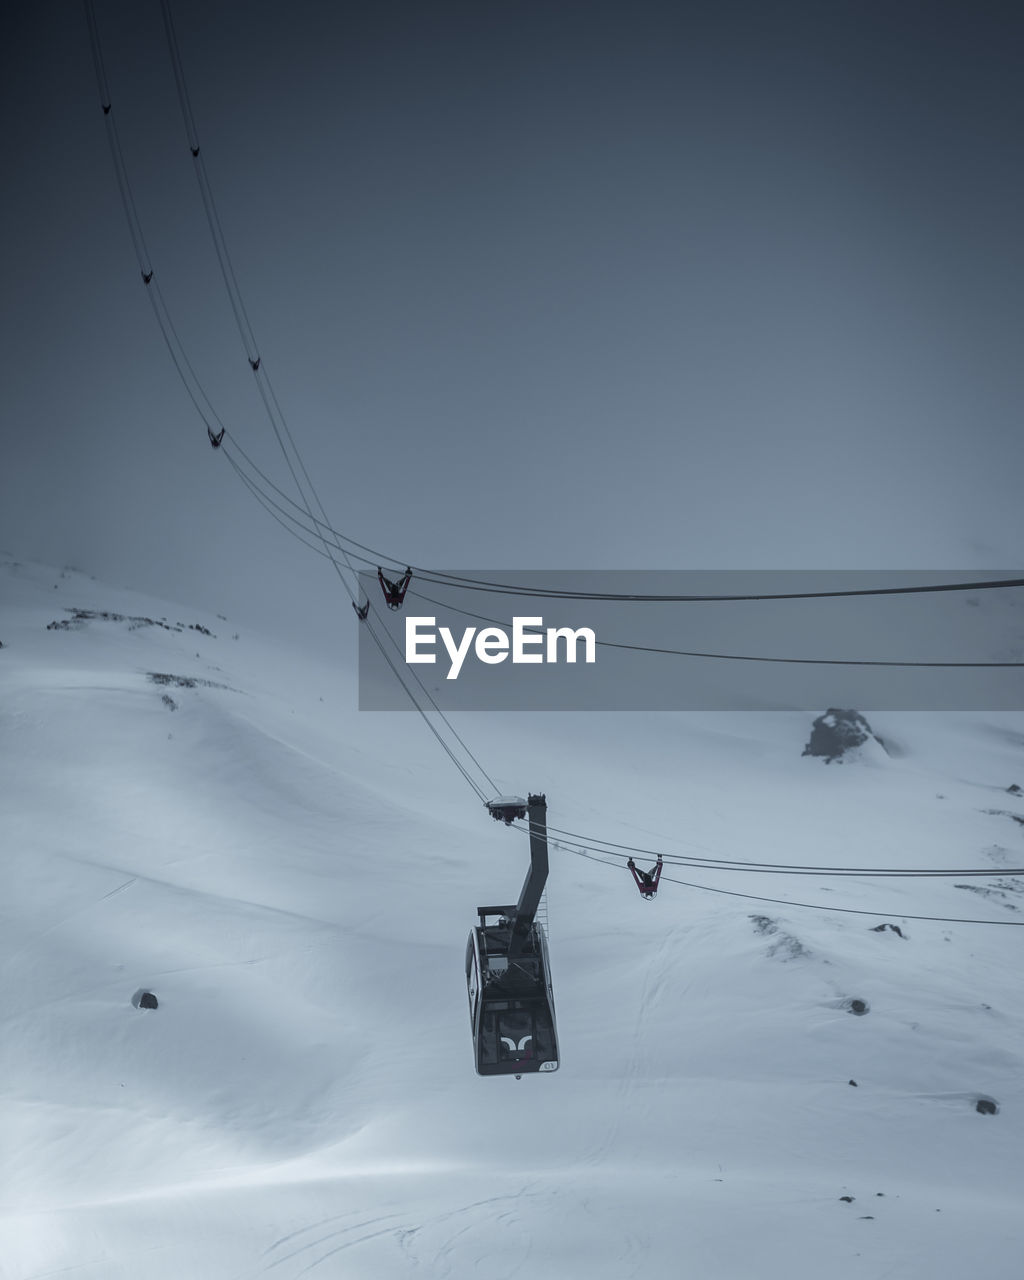 winter, cold temperature, cable, snow, sky, cable car, ski lift, scenics - nature, covering, beauty in nature, overhead cable car, tranquility, mountain, nature, low angle view, tranquil scene, no people, environment, land, snowcapped mountain, electricity